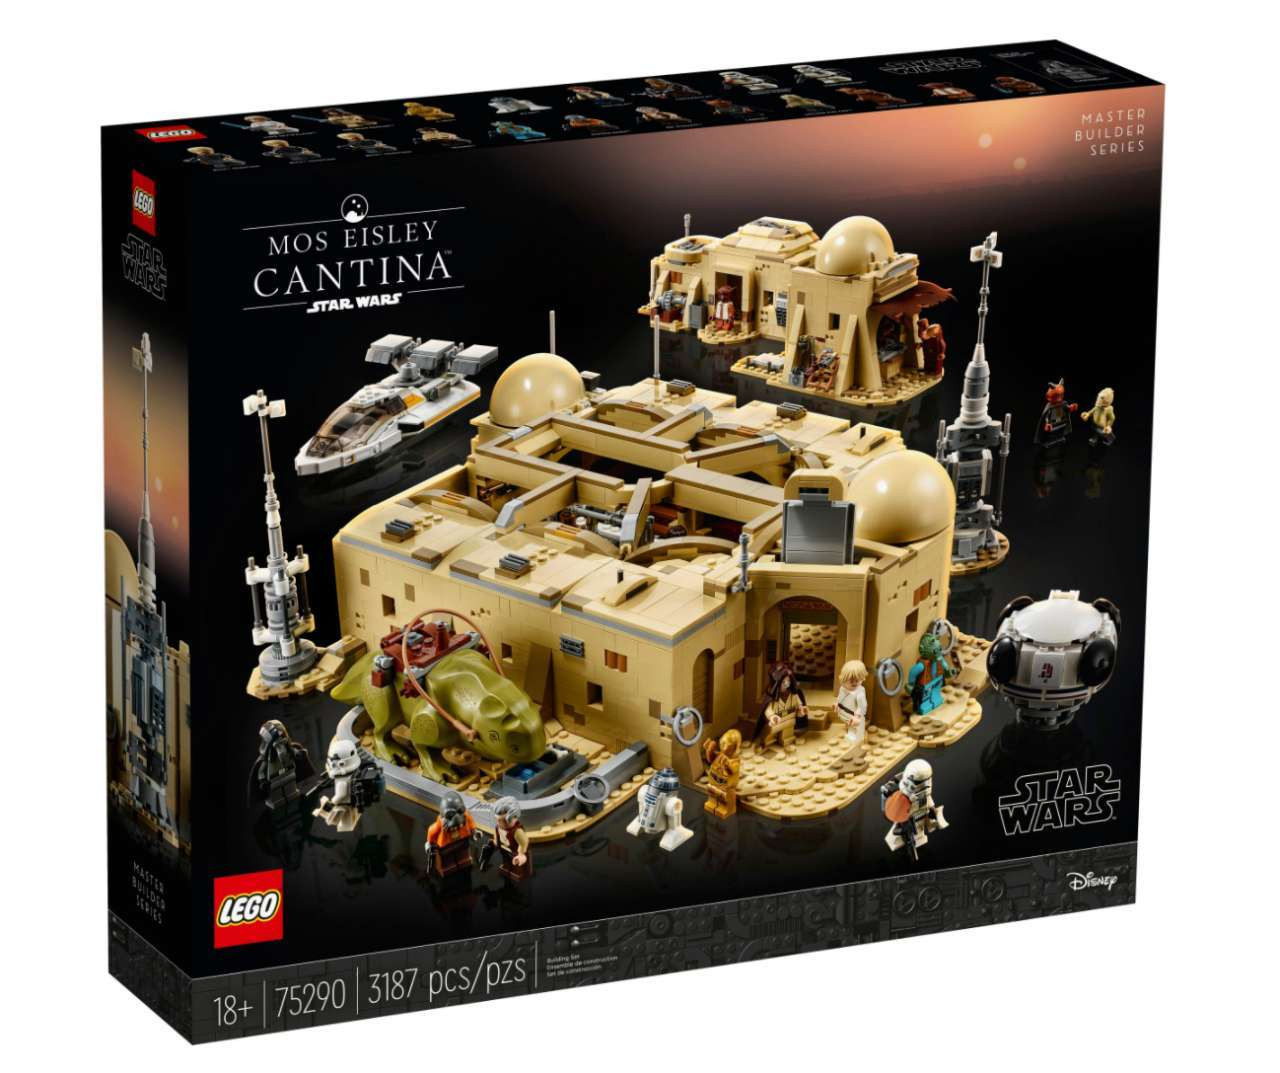 LEGO Star Wars: Enormous Mos Eisley Cantina Set Coming on October 1